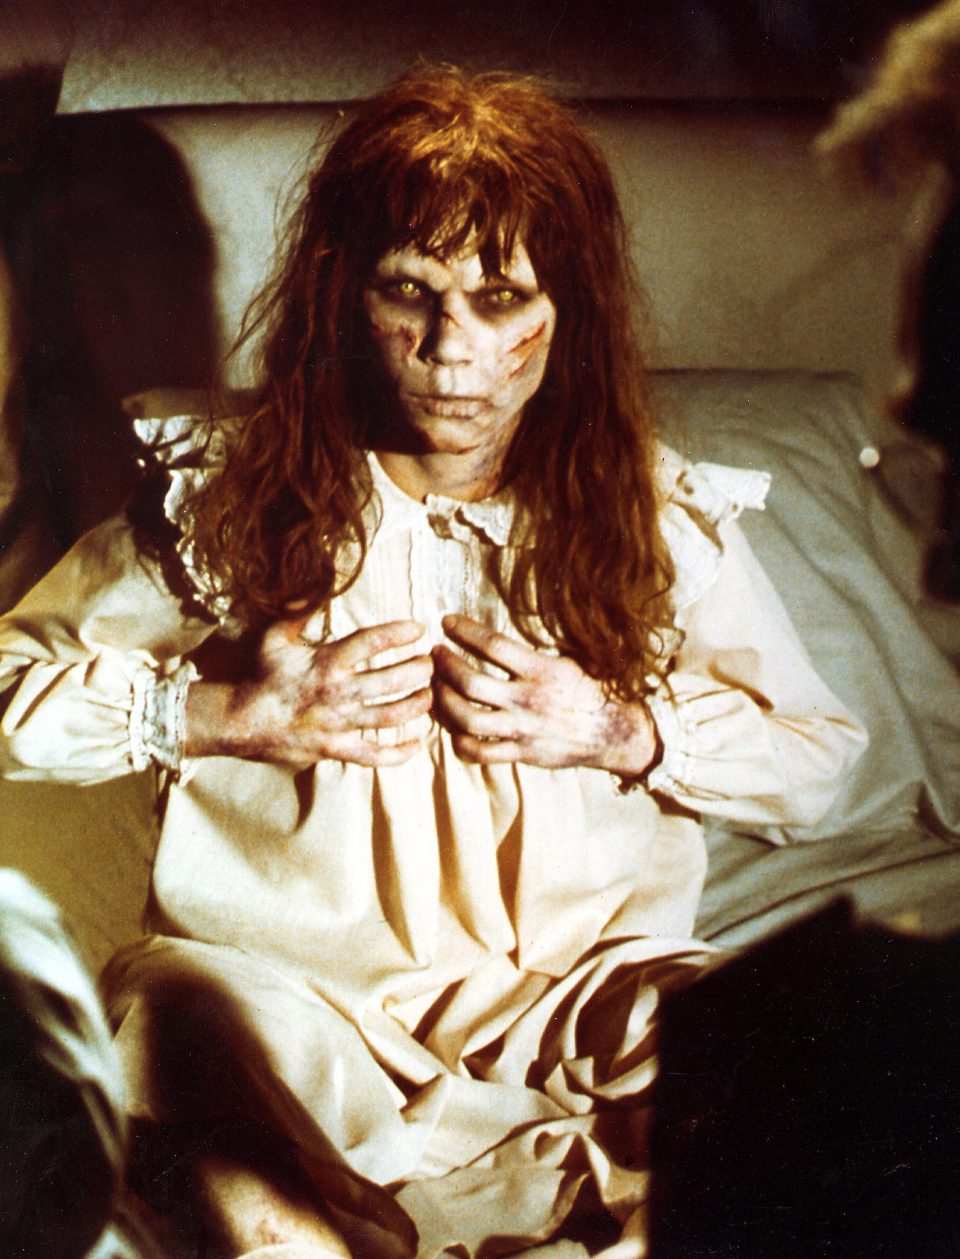 The original film was released in 1973 and shocked audiences with its gore